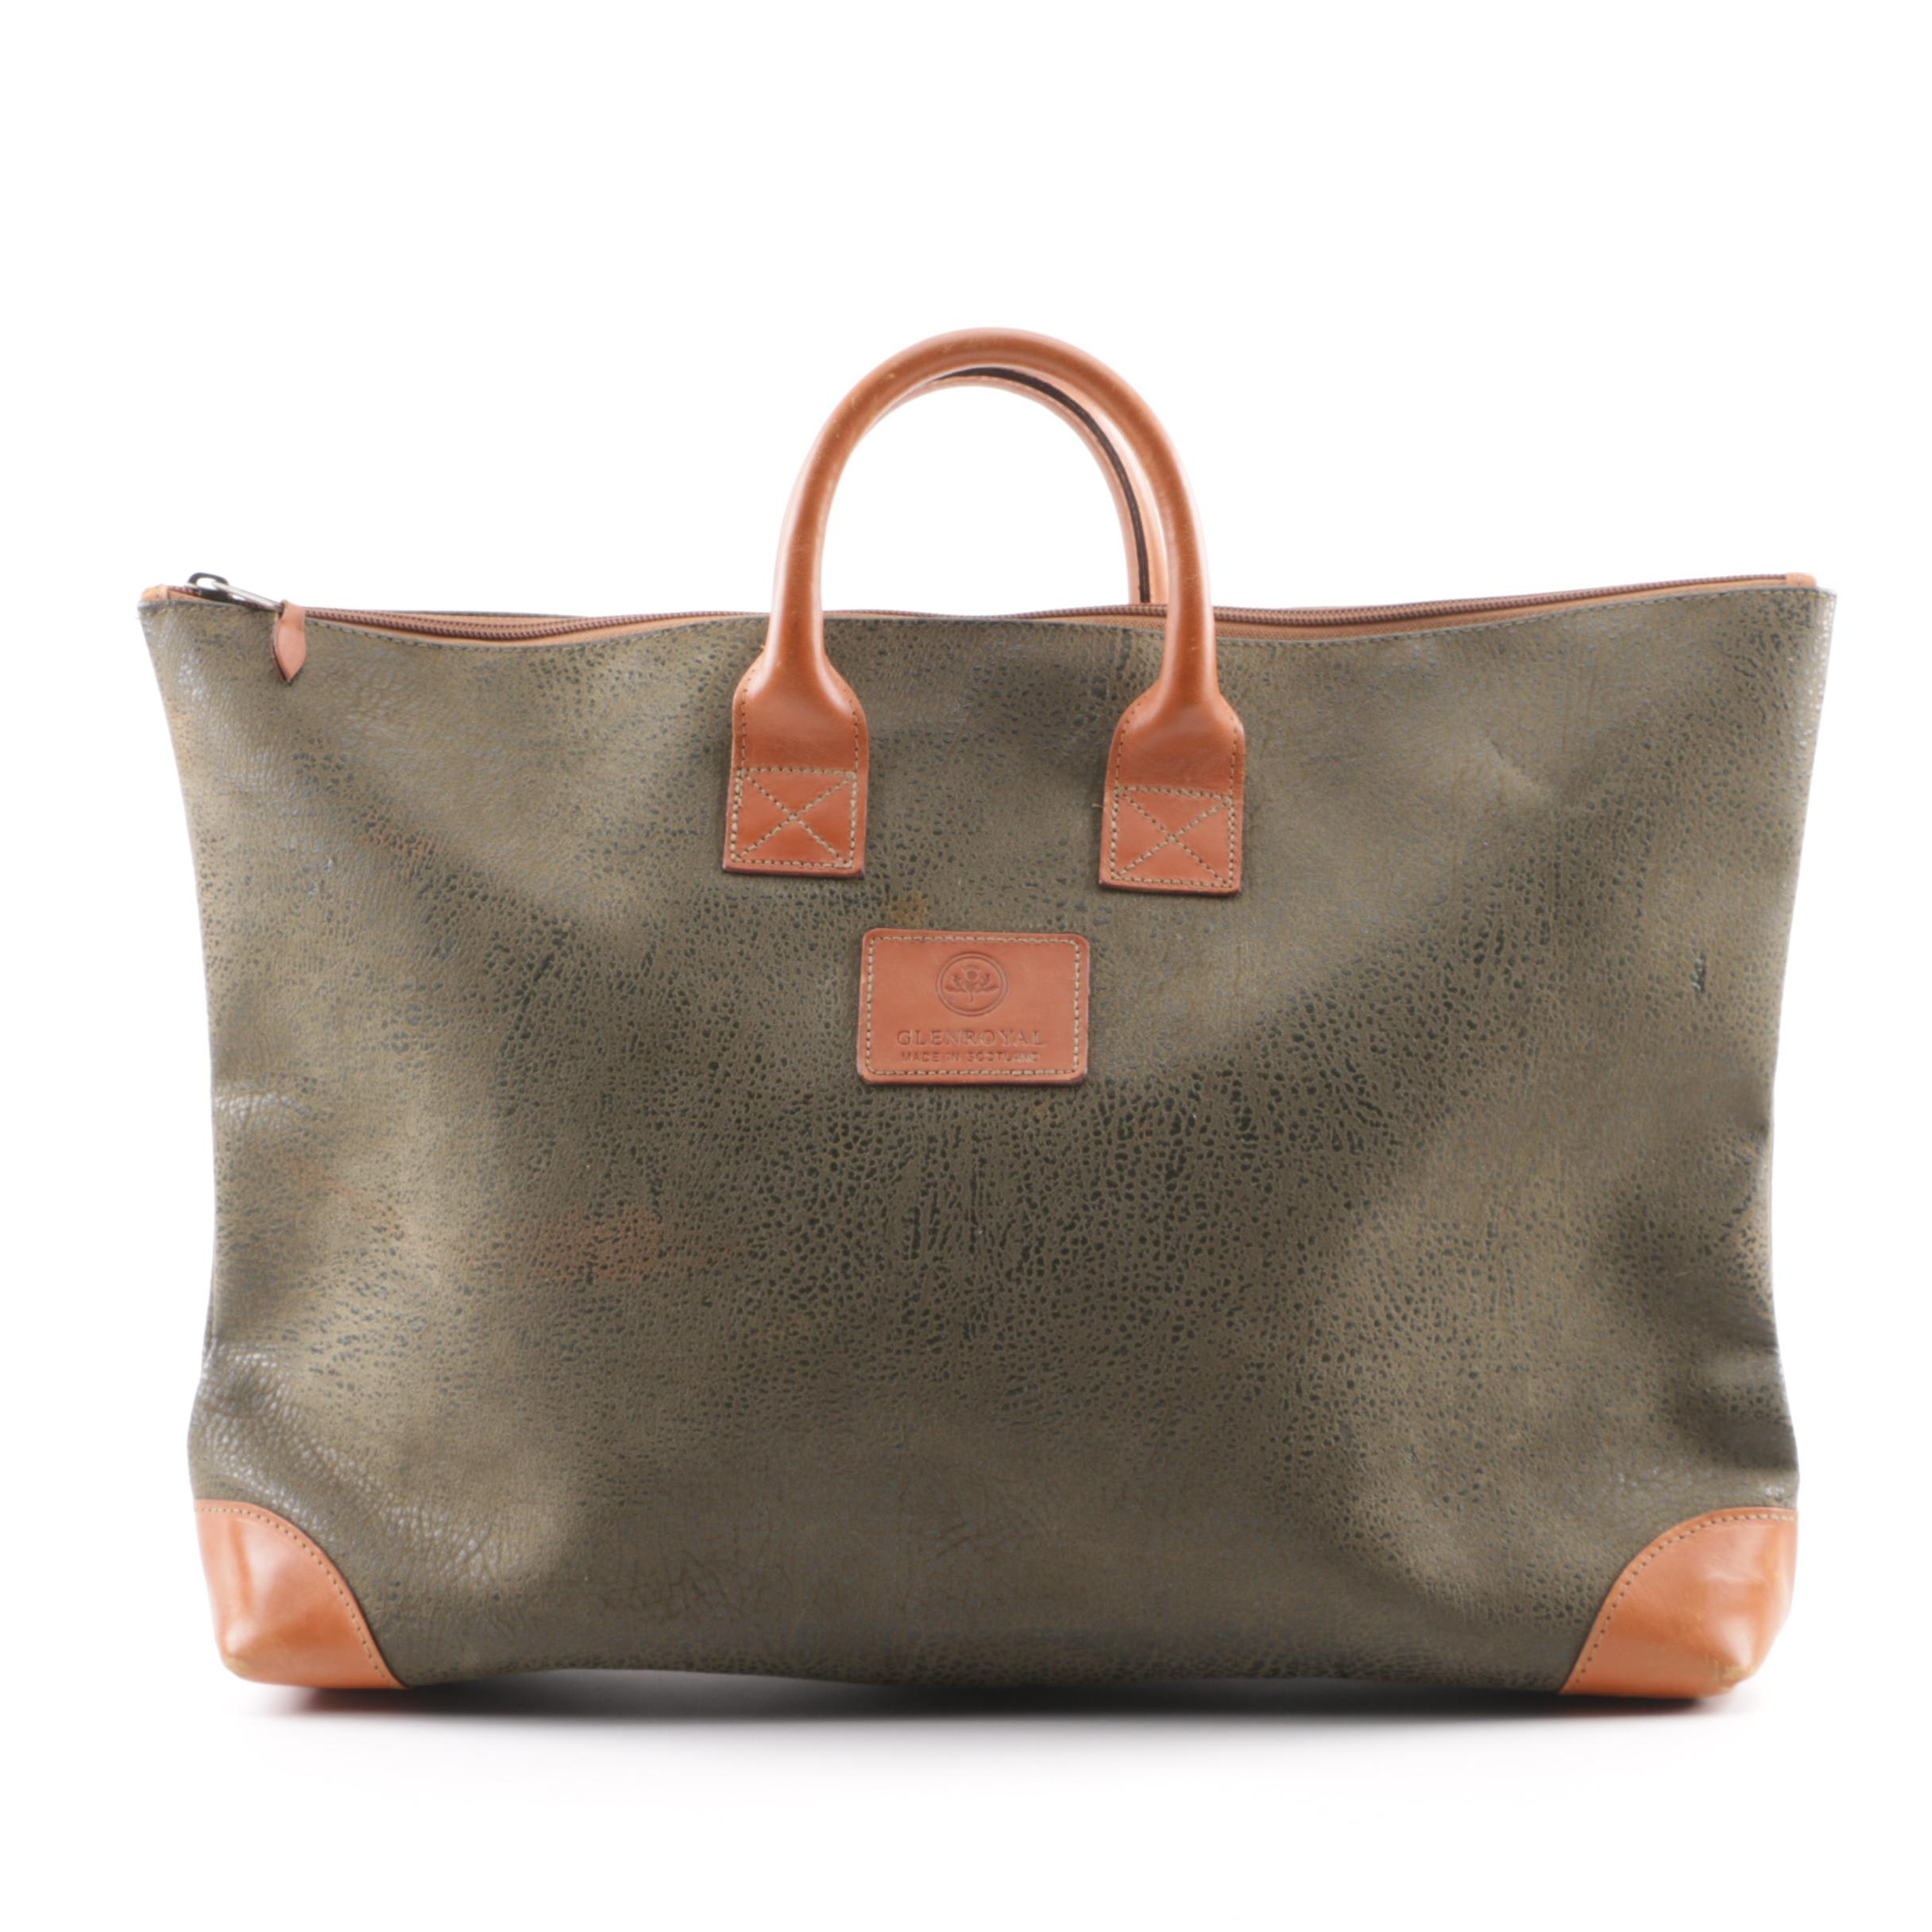 Glenroyal Scottish Made Leather Tote Bag with Plaid Lining